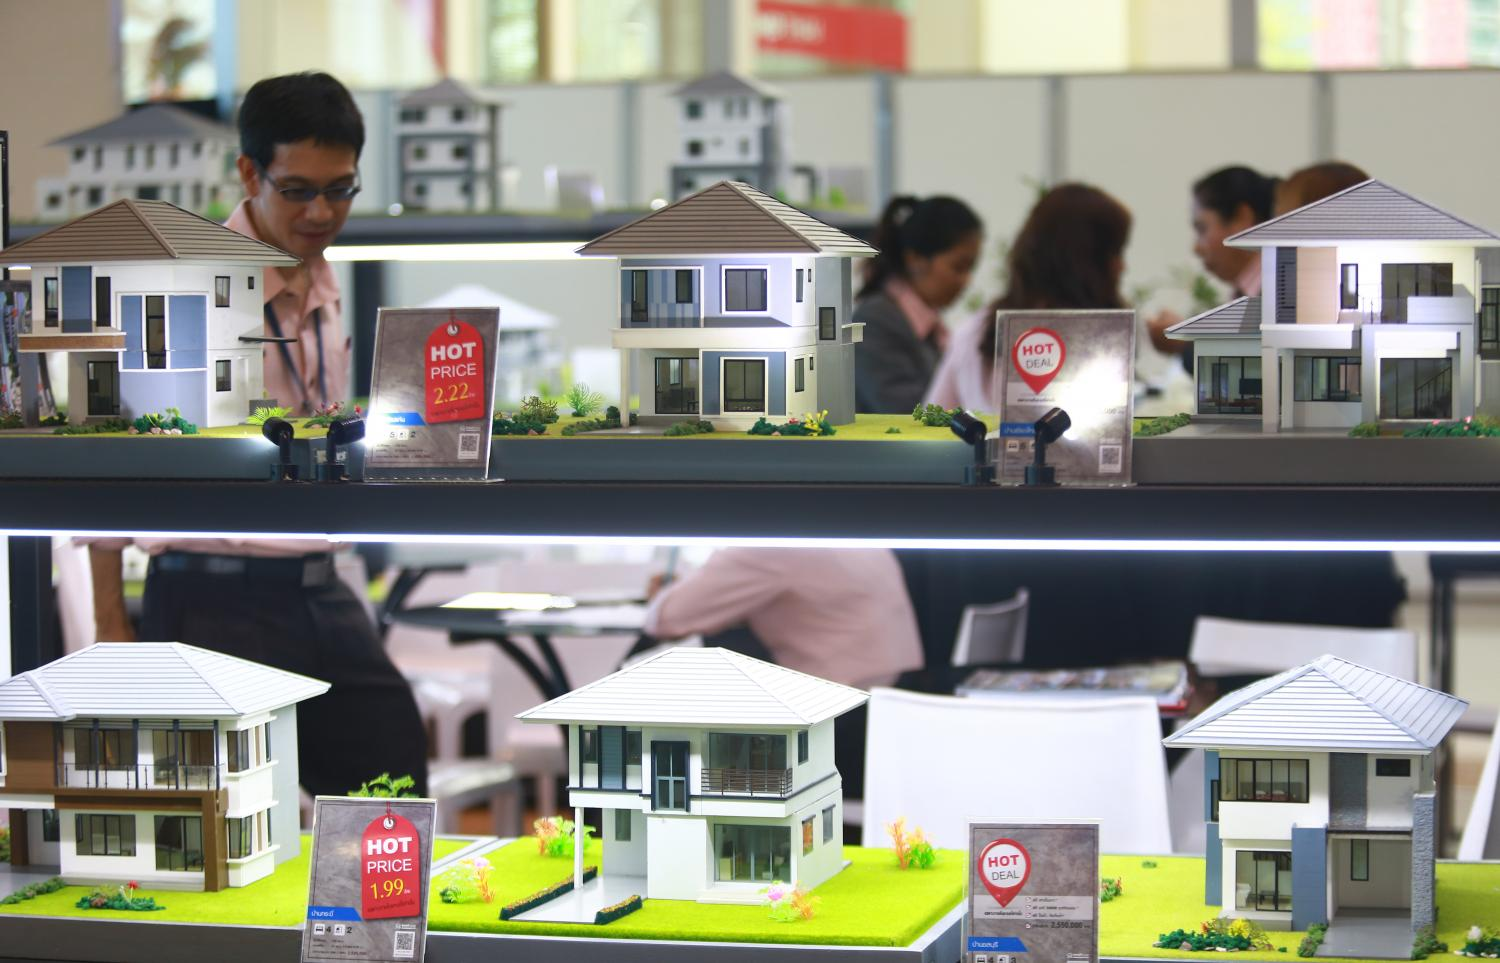 Models of two-storey residential units are on display during the House & Condo Fair at Siam Paragon. (Photo by Somchai Poomlard)